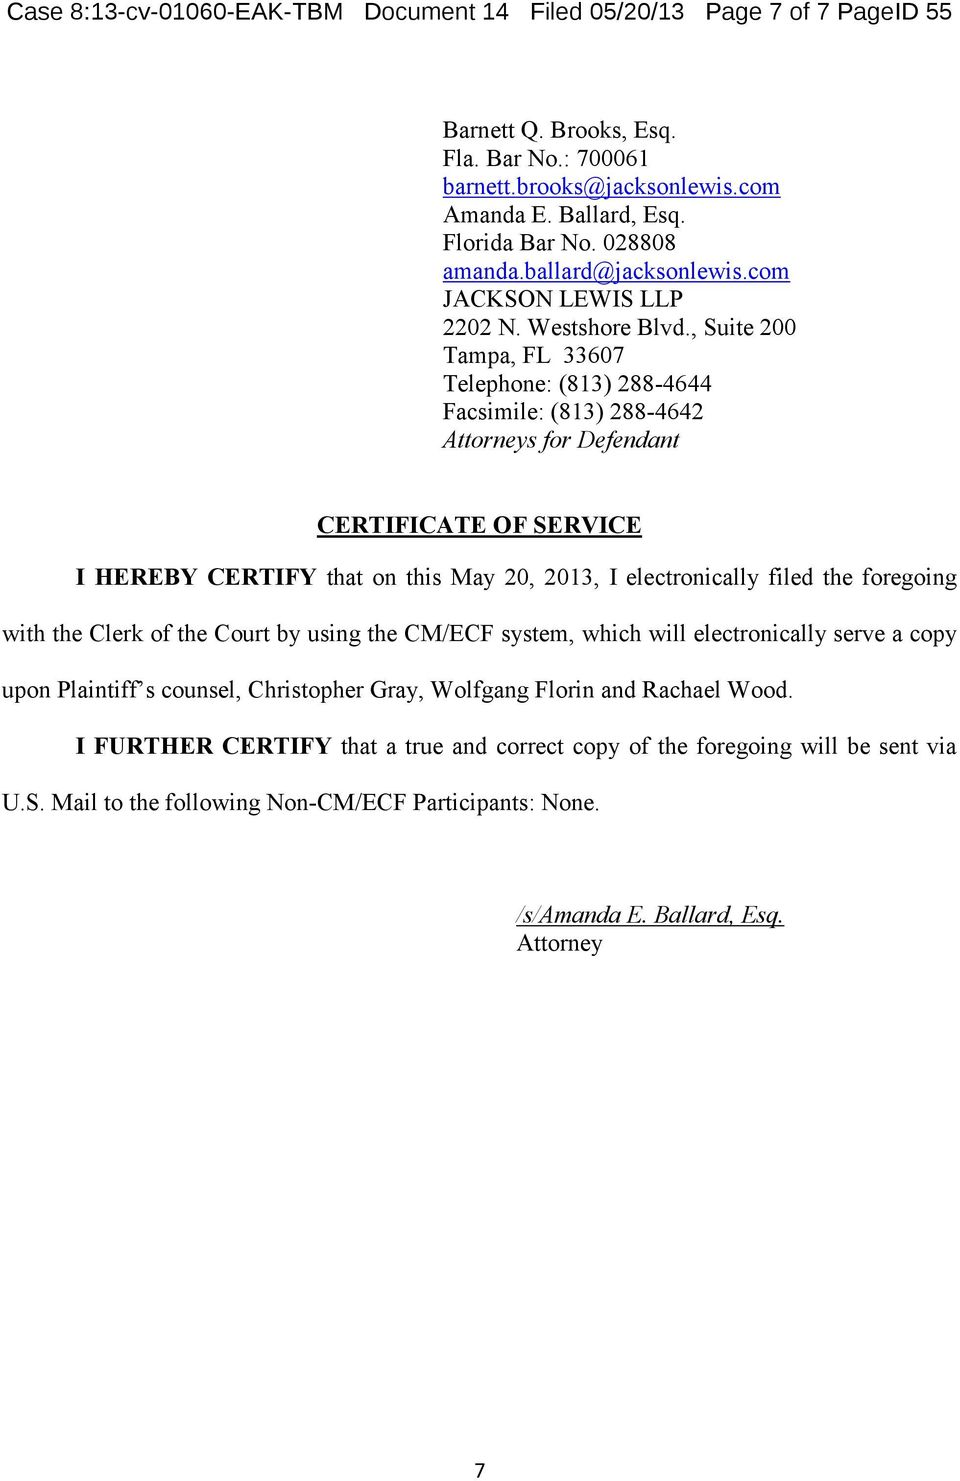 , Suite 200 Tampa, FL 33607 Telephone: (813) 288-4644 Facsimile: (813) 288-4642 Attorneys for Defendant CERTIFICATE OF SERVICE I HEREBY CERTIFY that on this May 20, 2013, I electronically filed the